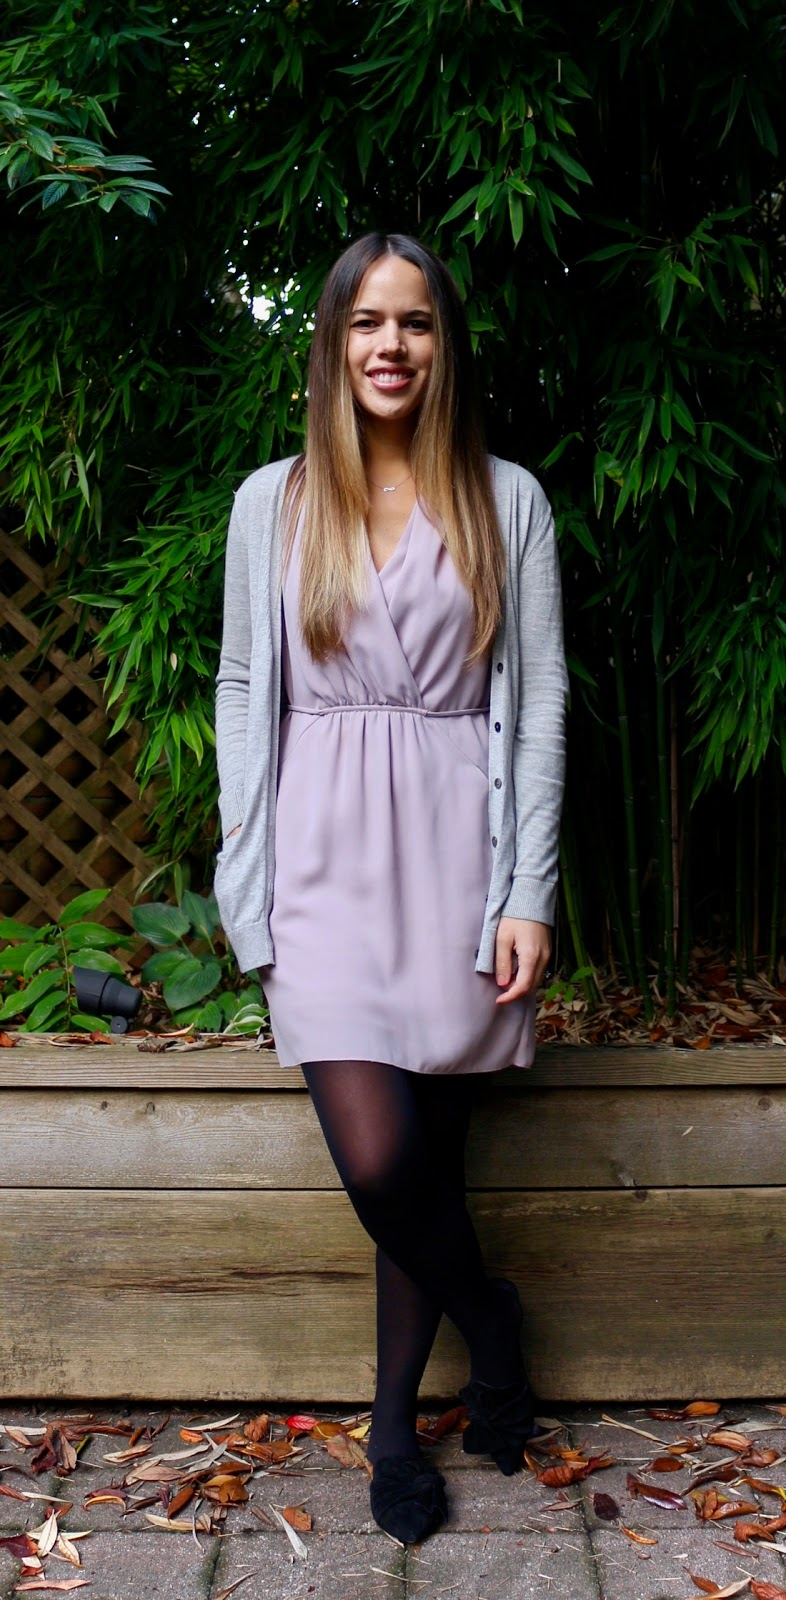 Jules in Flats - Aritzia Sabine Dress with Cardigan (Business Casual Fall Workwear on a Budget)